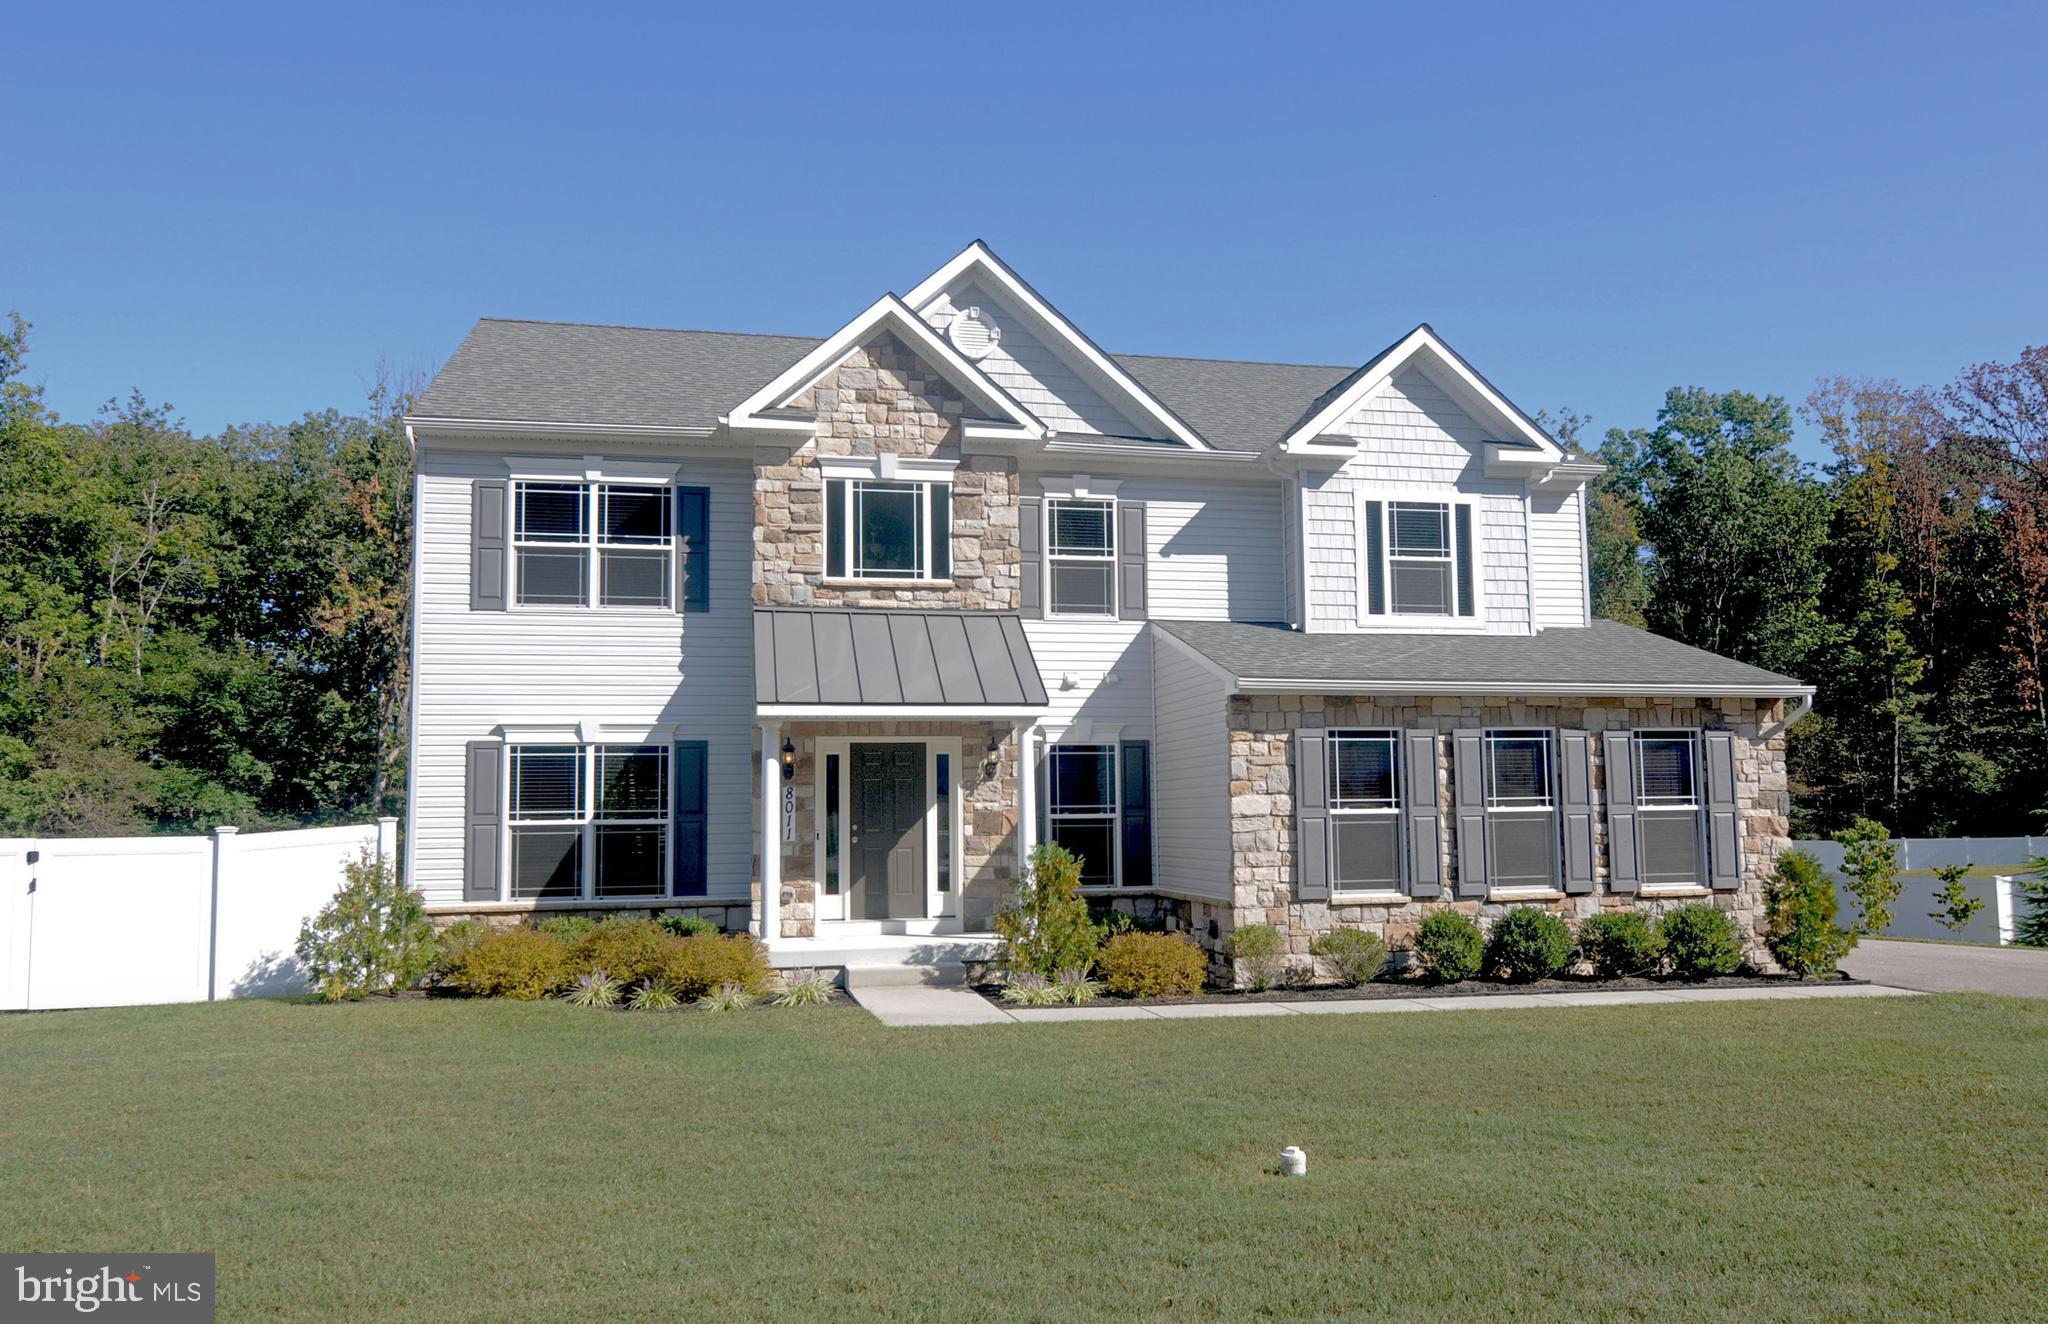 Nearly new colonial sited on a large .55 acre lot. Features a two story foyer. Gourmet kitchen with